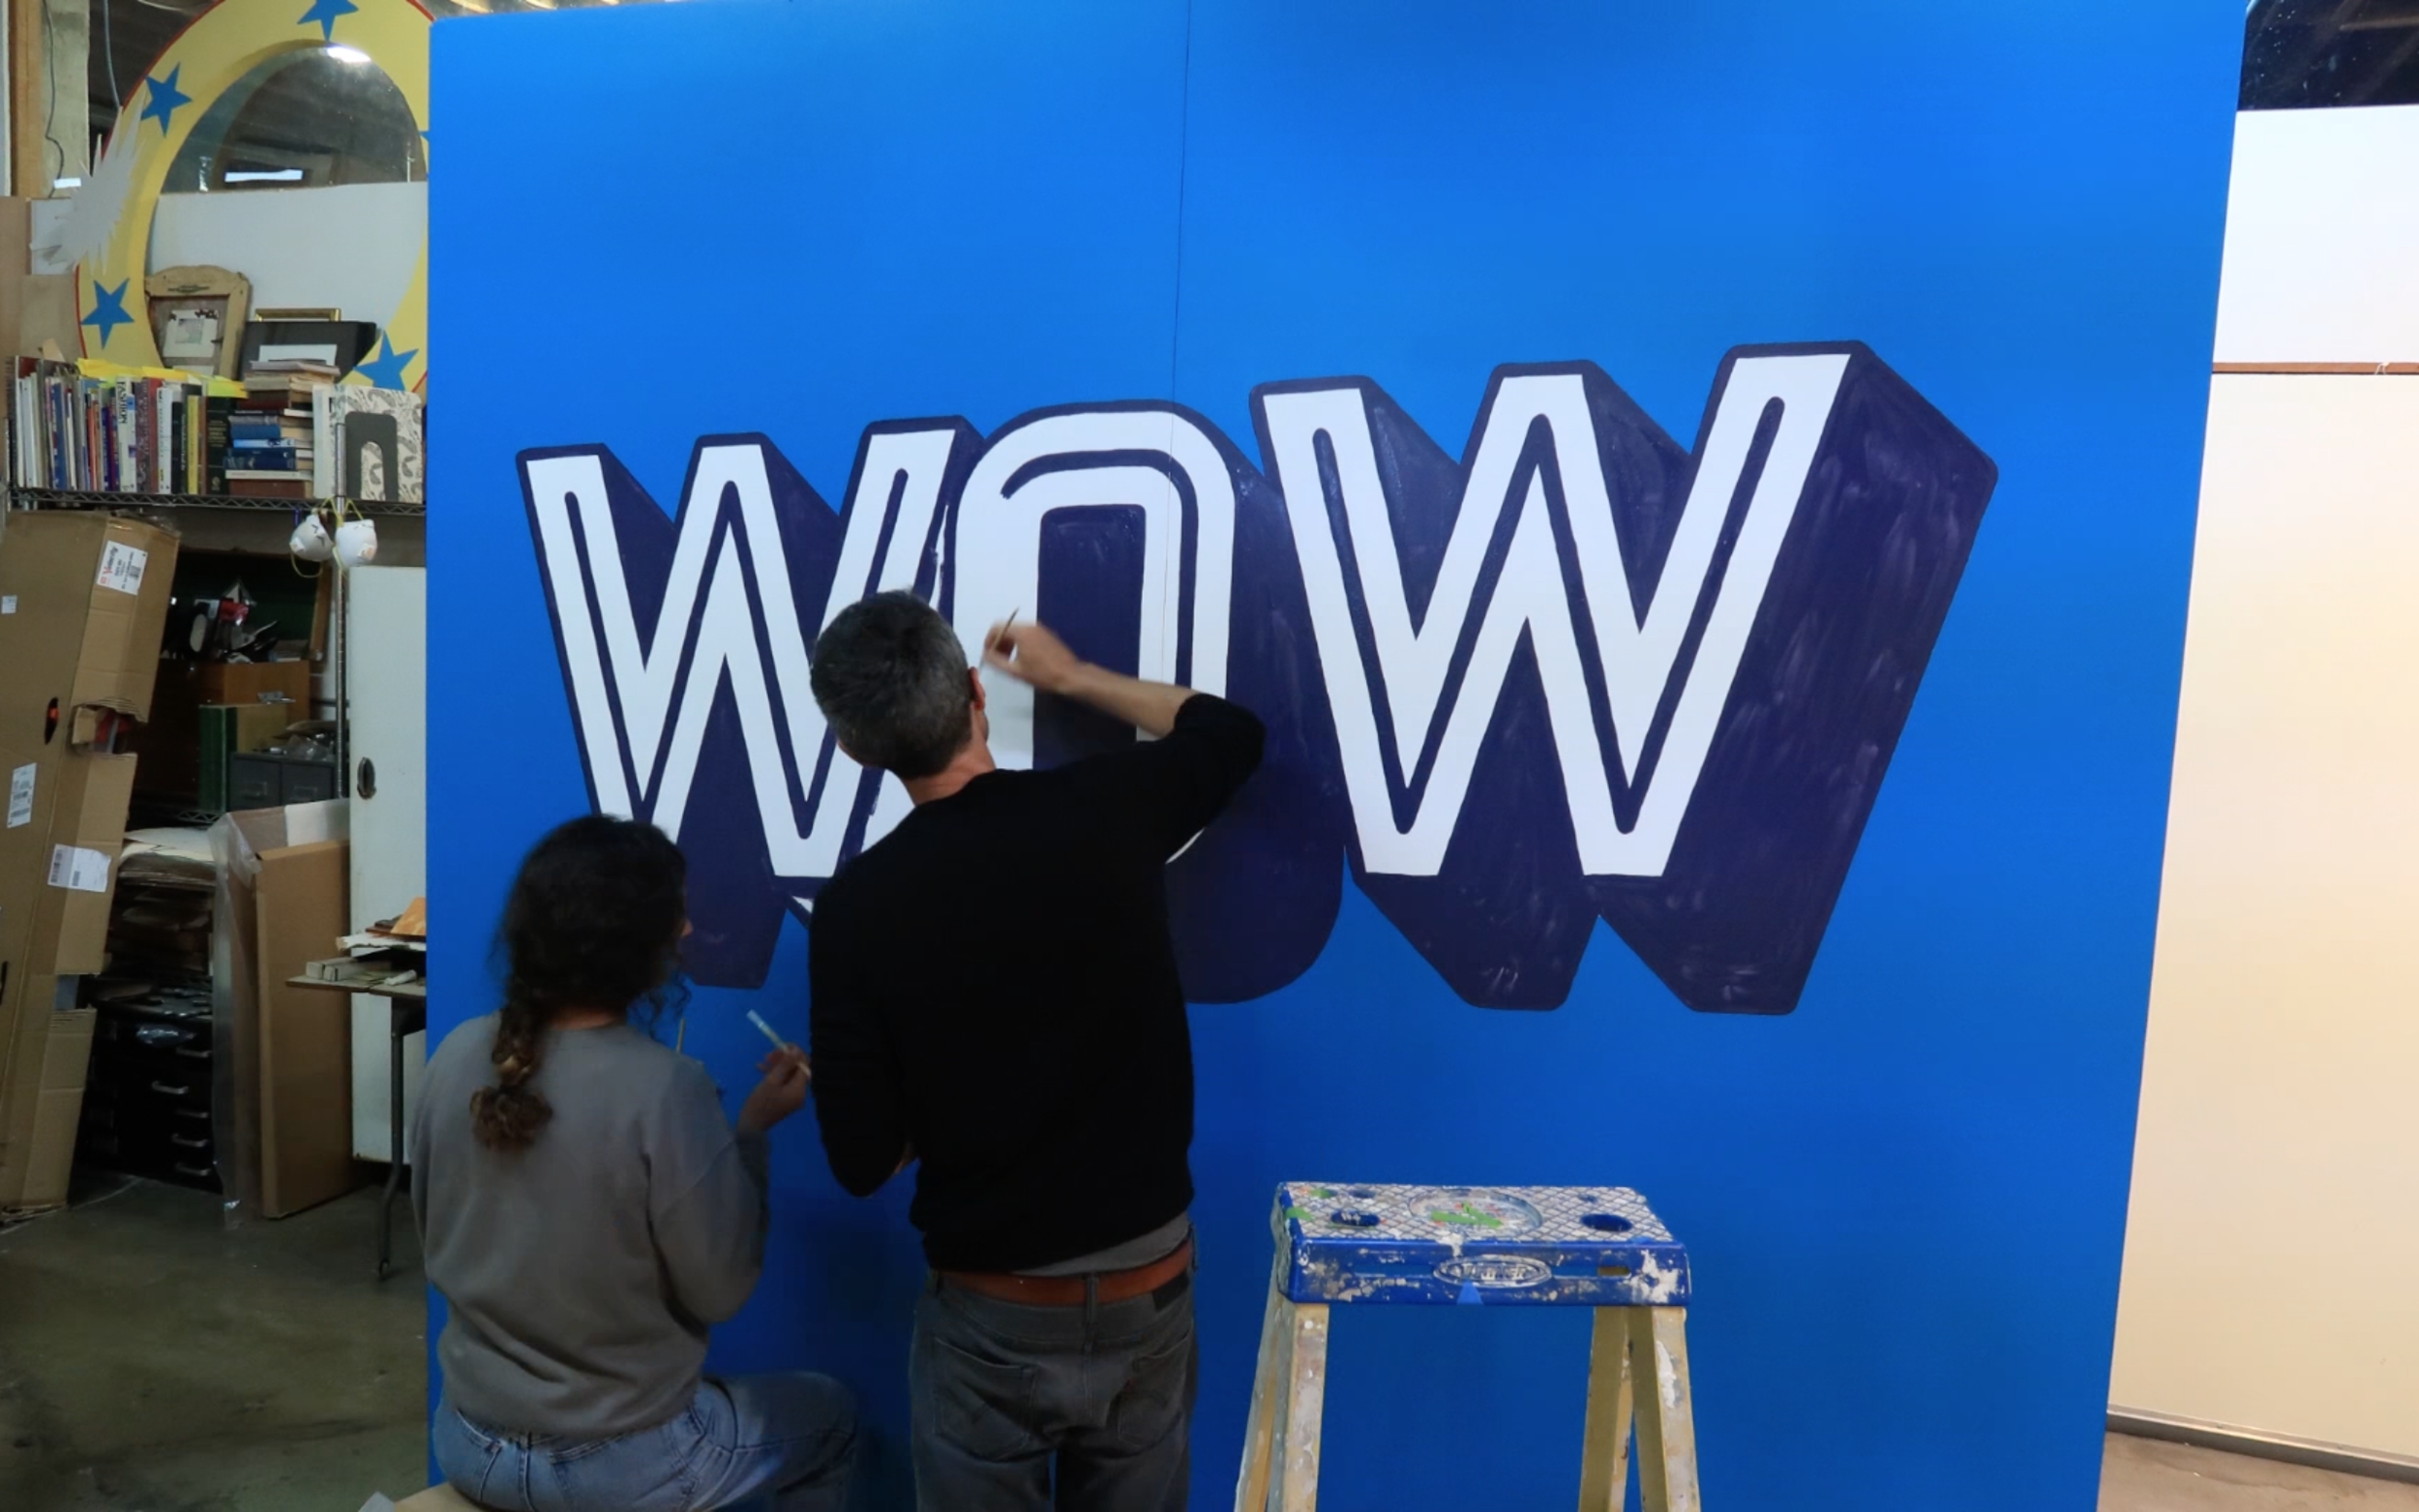 Event-mural-interactive-san-francisco-bare-conductive-wall-and-wall-mural-company_005.png